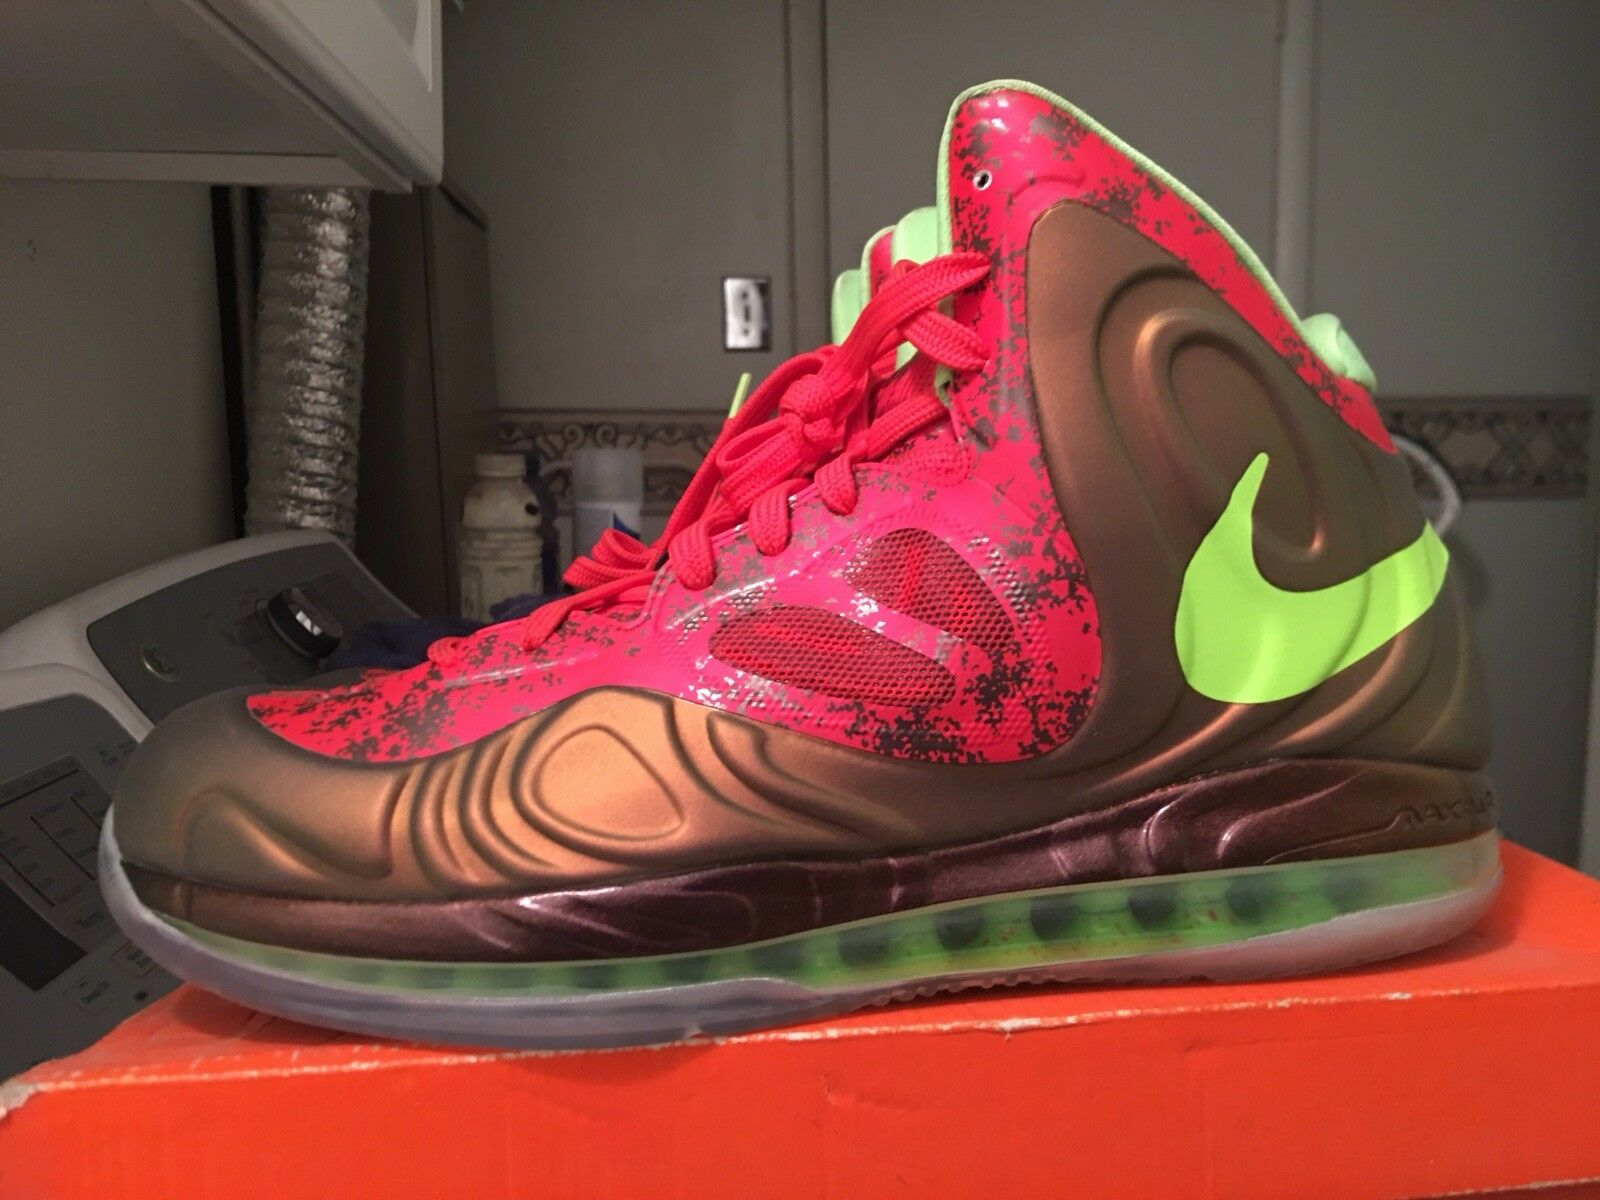 DS Andre Drummond PE Nike Hyperposite Promo Sample 11 player edition foamposite